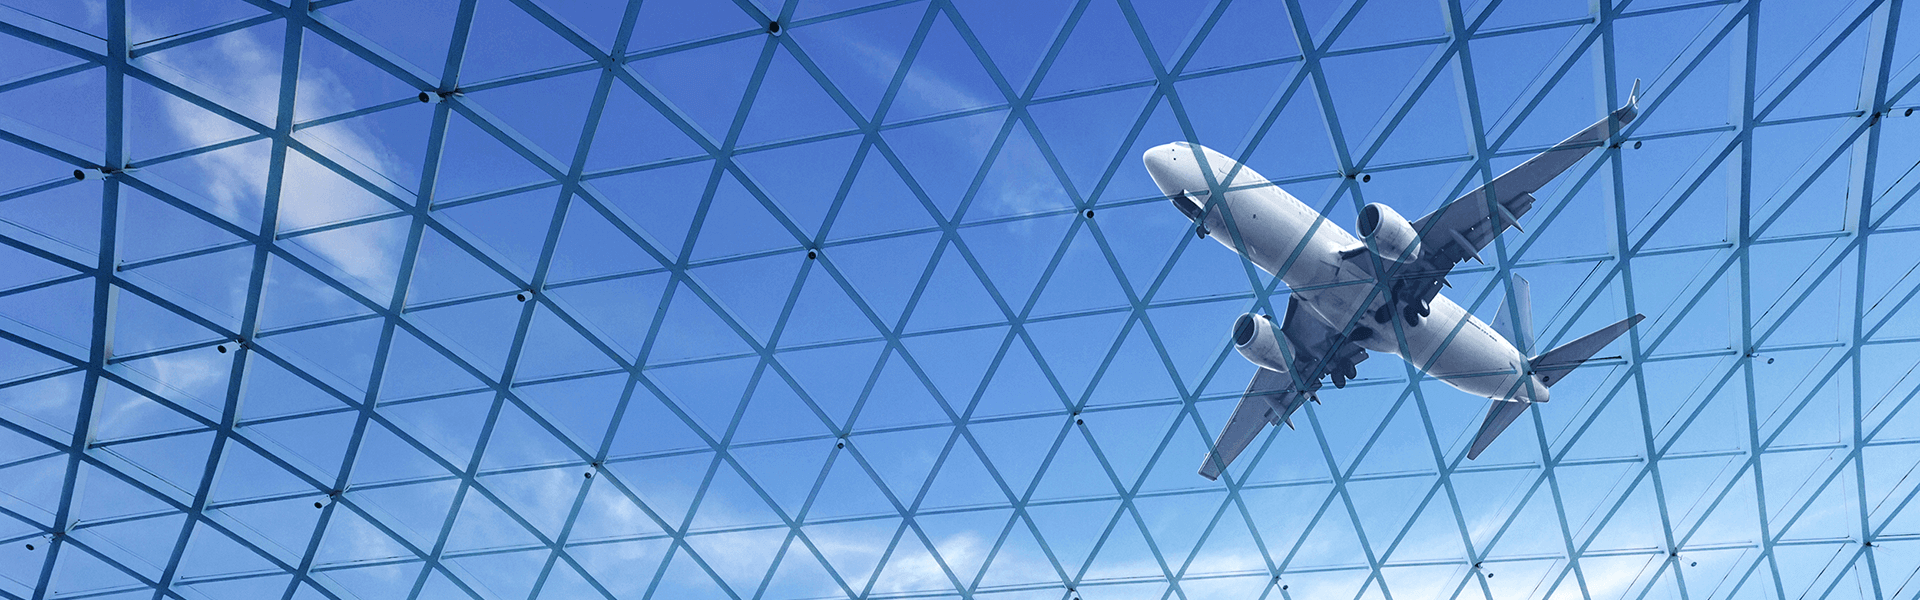 Plane flying above a glass ceiling